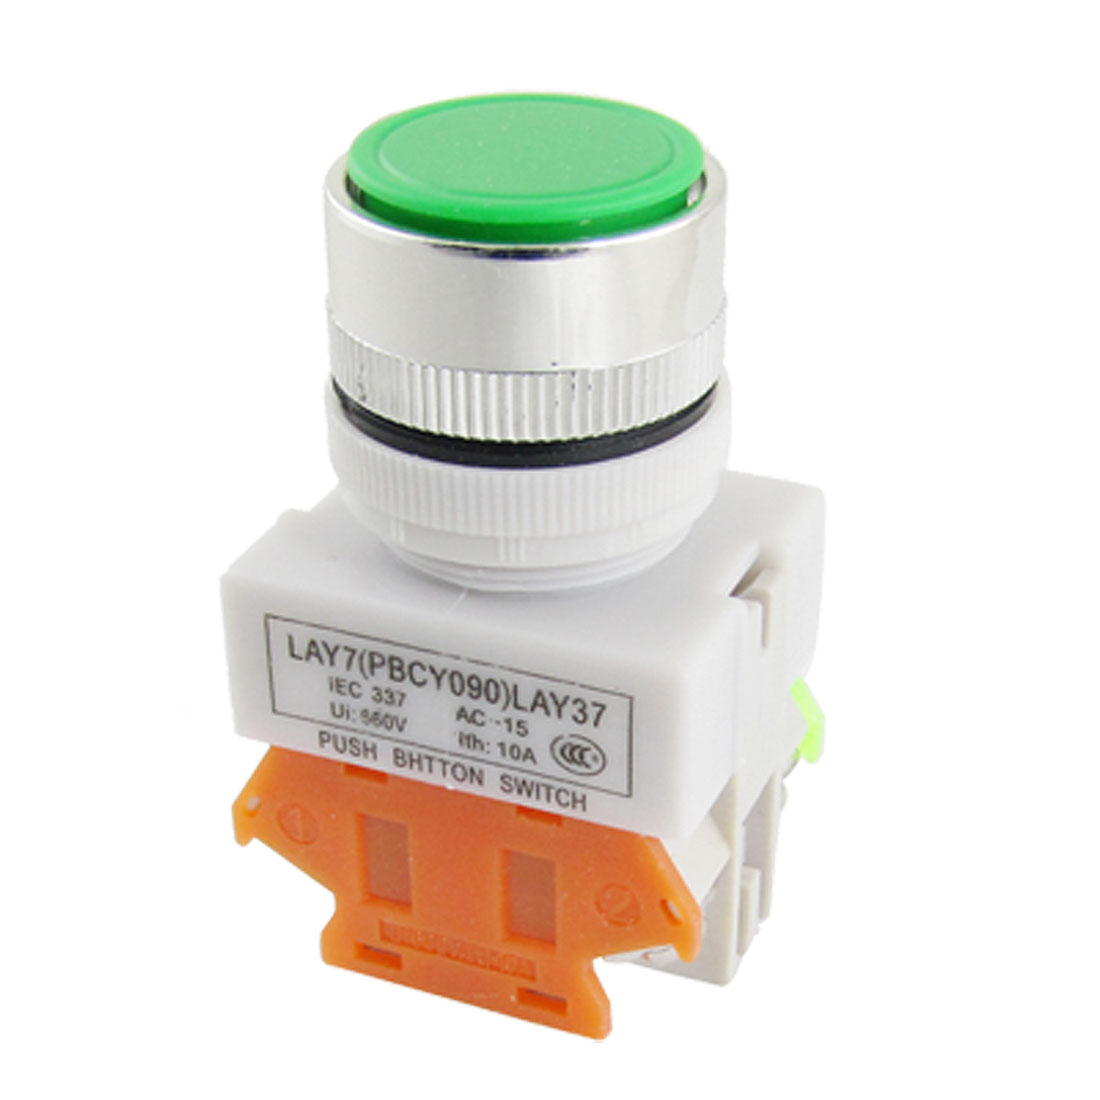 AC 660V 10A Green Sign Momentary Push Button Switch Pushbutton 22mm 1 NO 1 NC